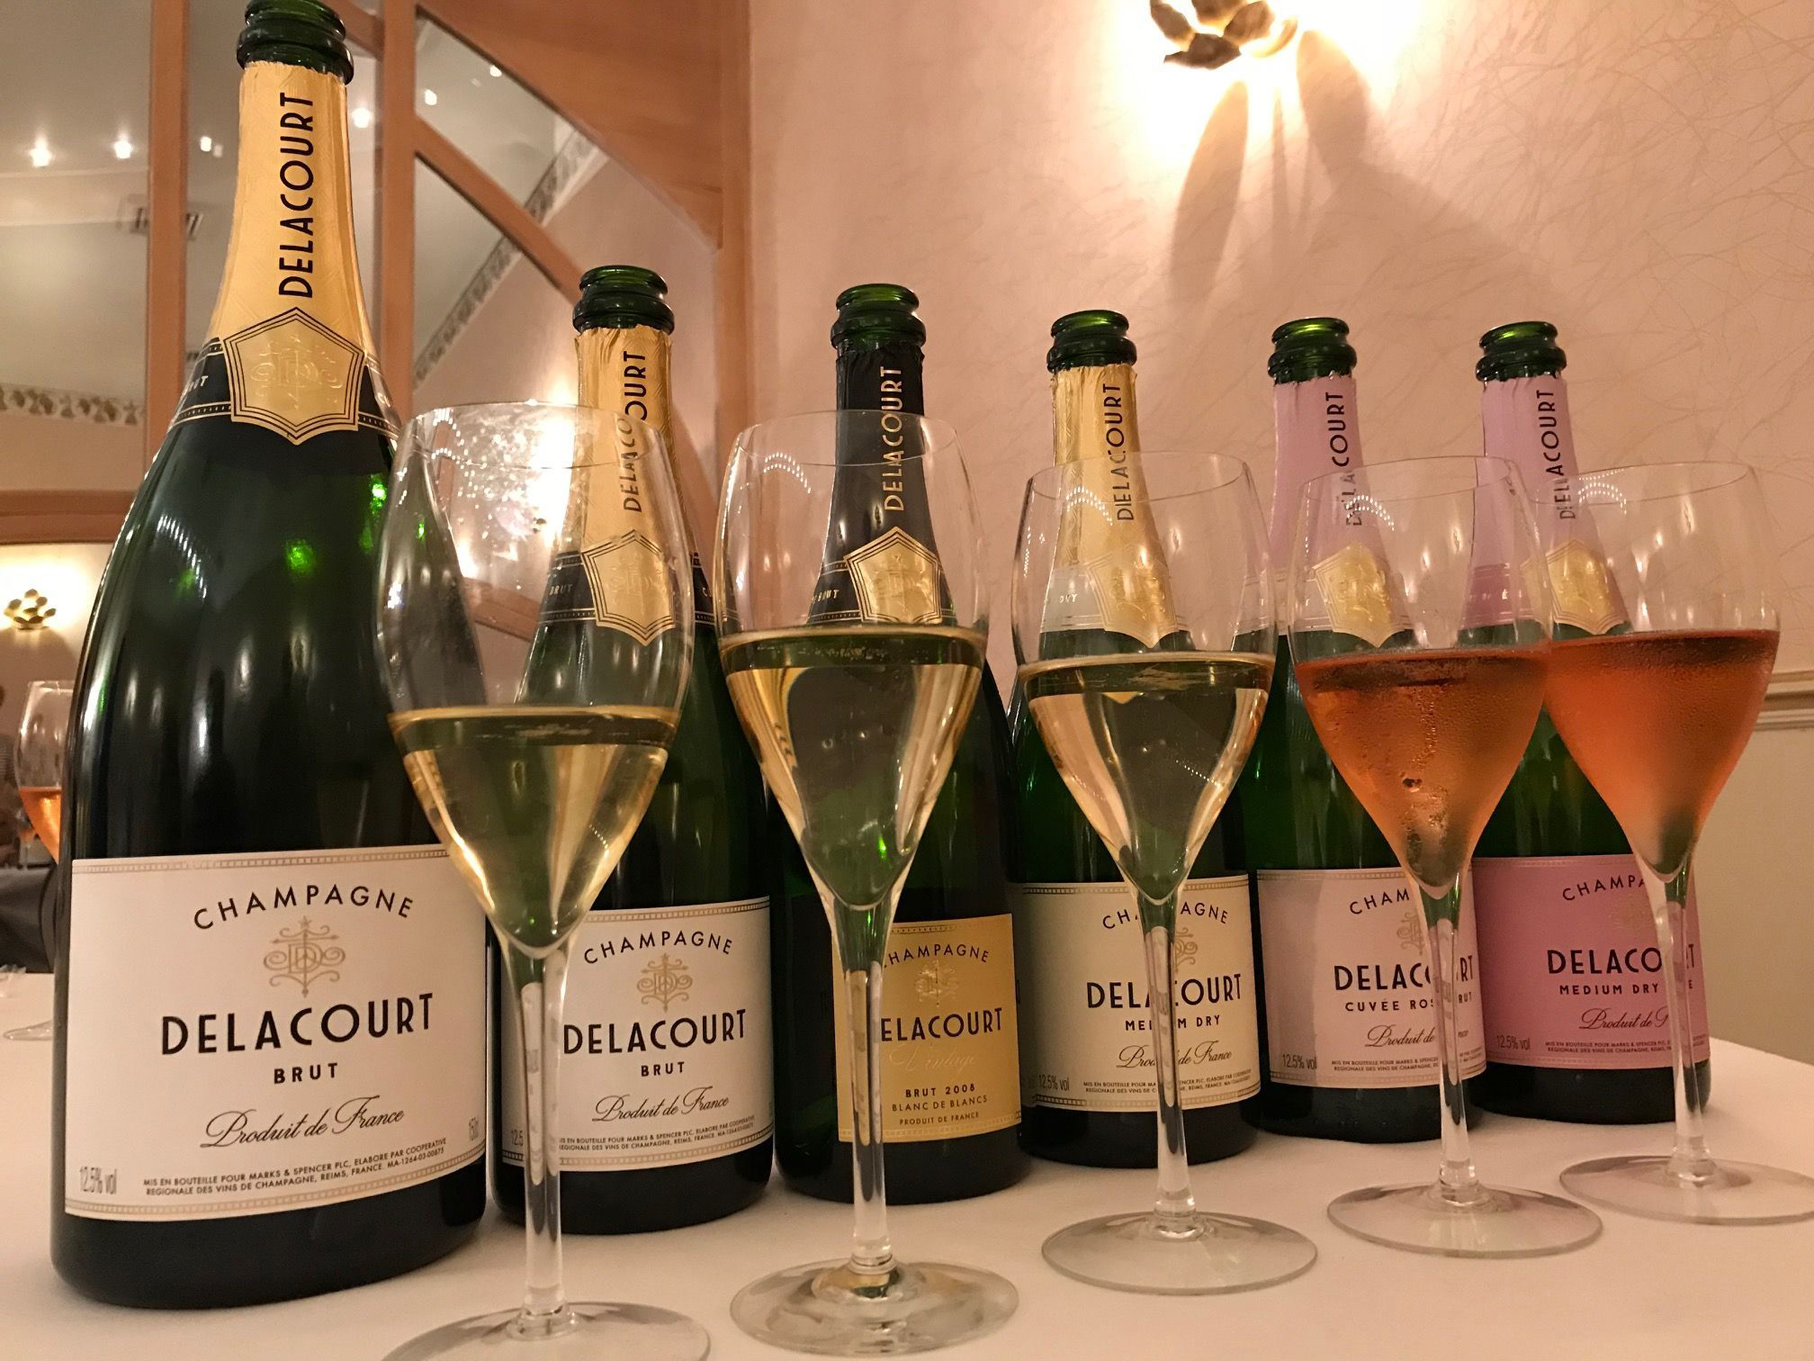 Delacort range of champagnes, Marks & Spencer